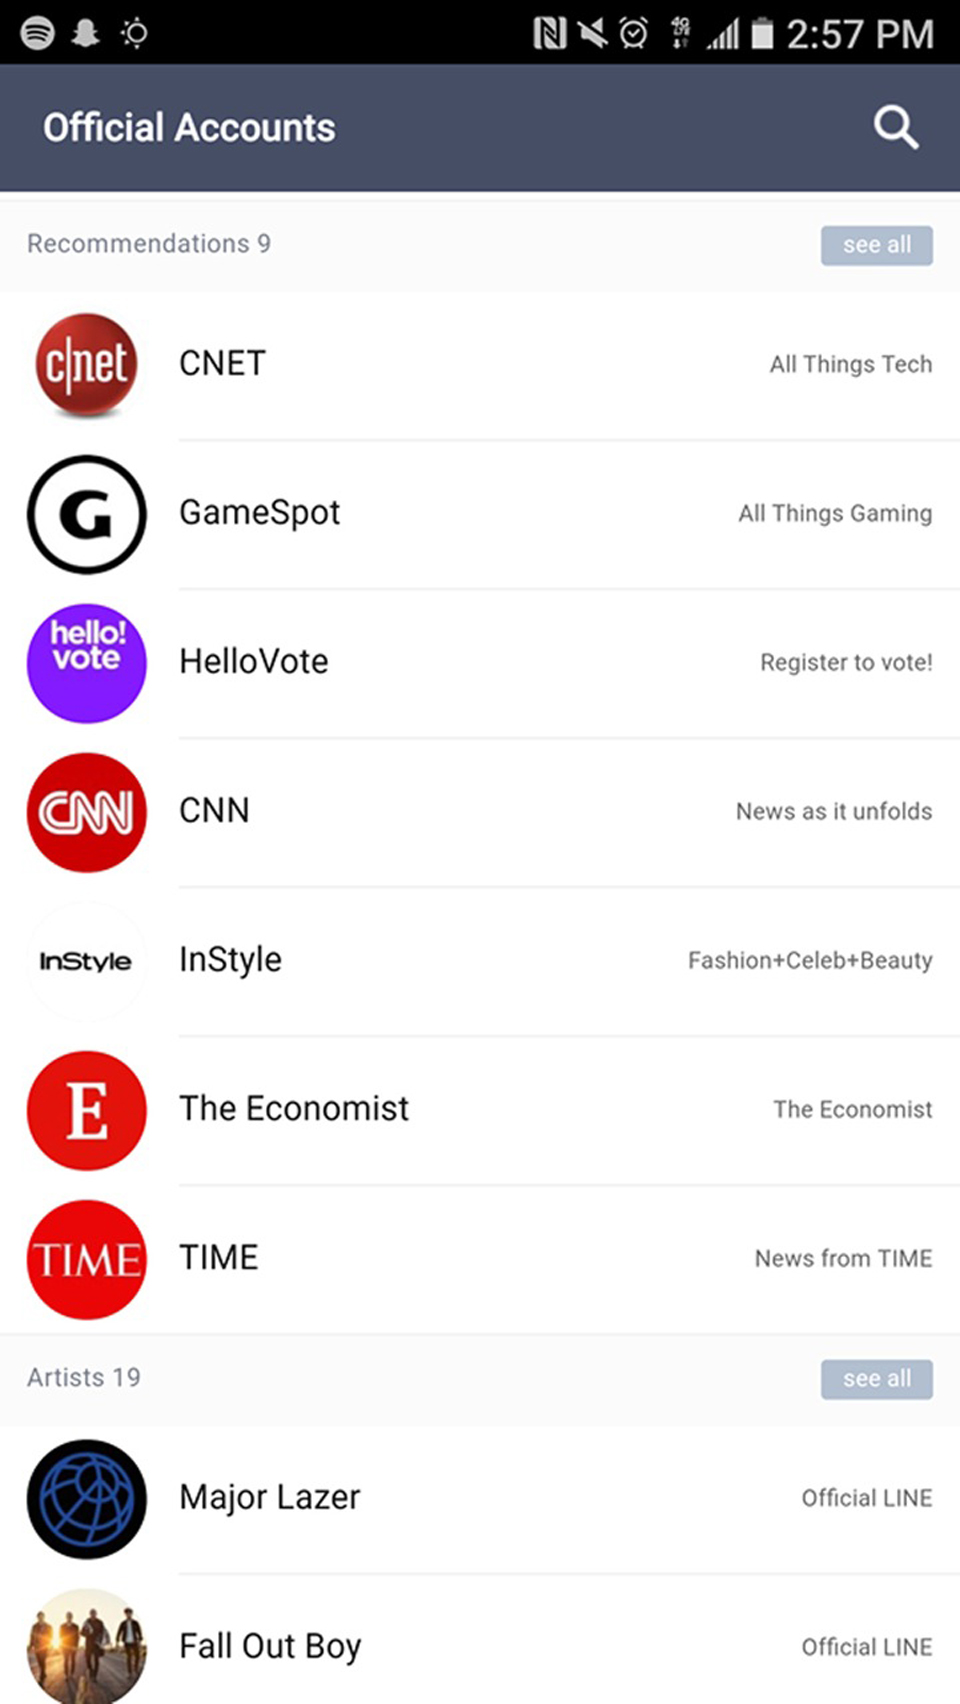 A List Of Brands Who Created Social Interaction Apps Such As CNET, HelloVote, TIME, Major Lazer